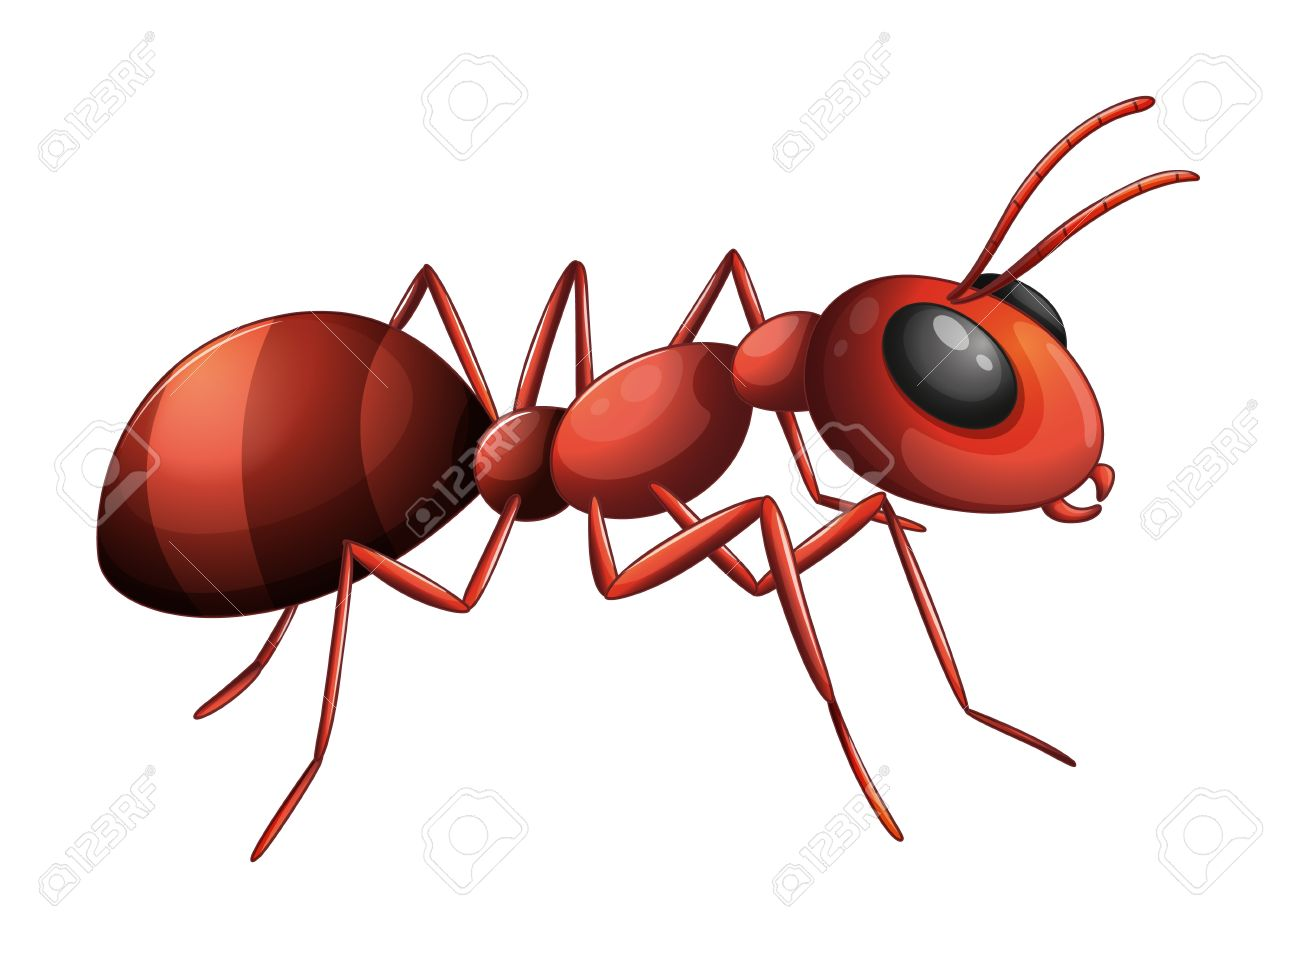 9 907 ants stock illustrations cliparts and royalty free ants vectors rh 123rf com ants clipart free clipart ants marching